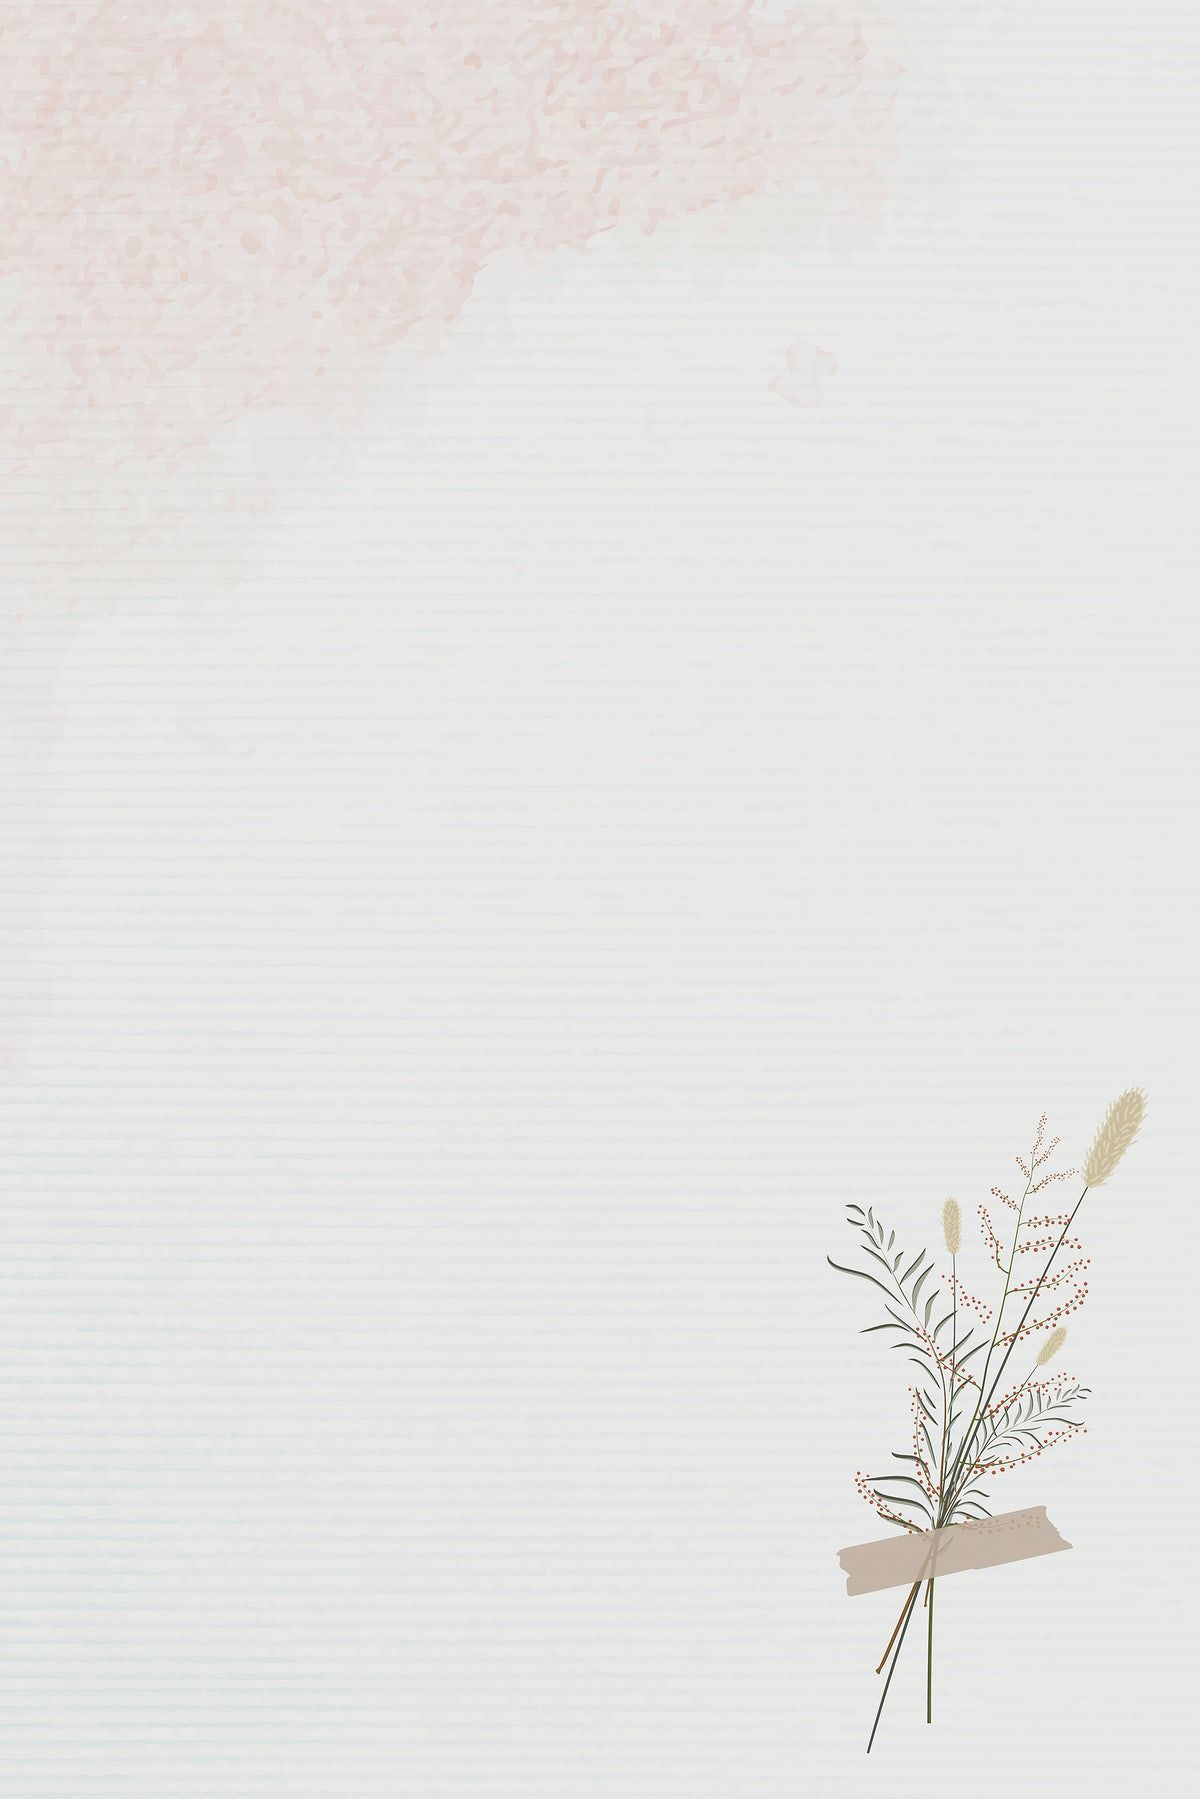 Download premium vector of Vintage leaves design background vector by marinemynt about hand drawn, beige background flower, background, beige, and blank 1228922